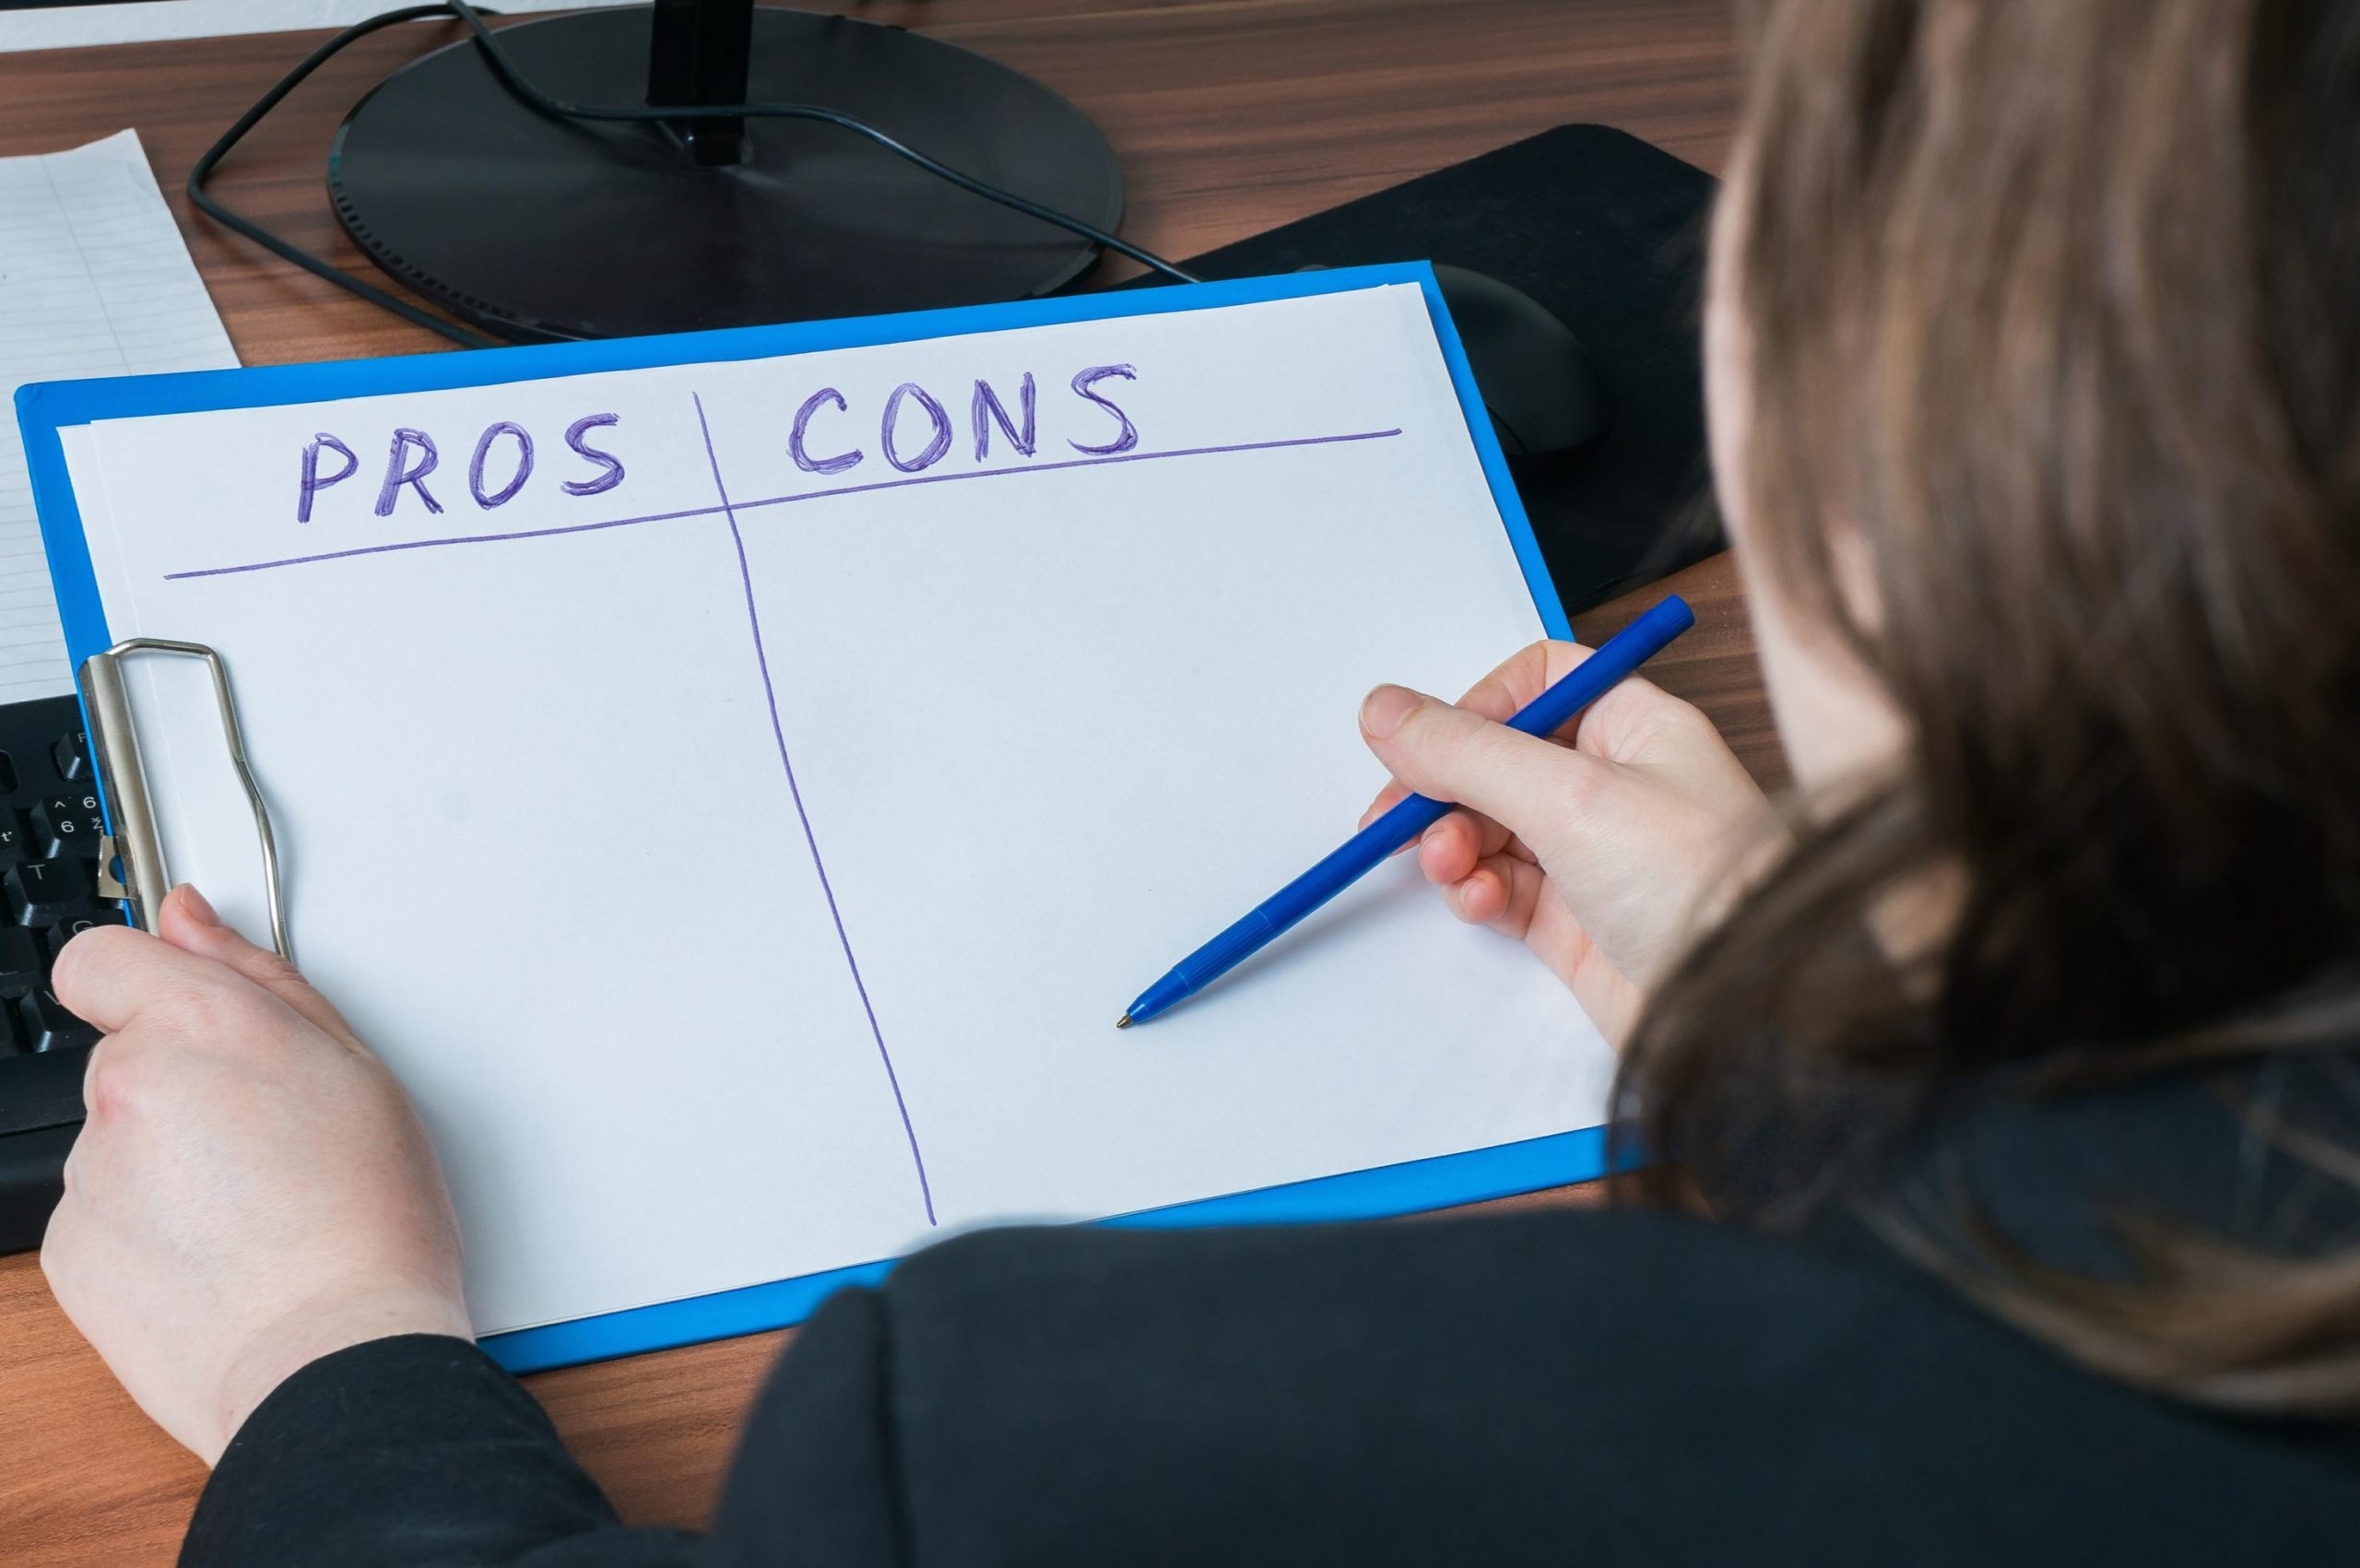 Listing All The Pros And Cons